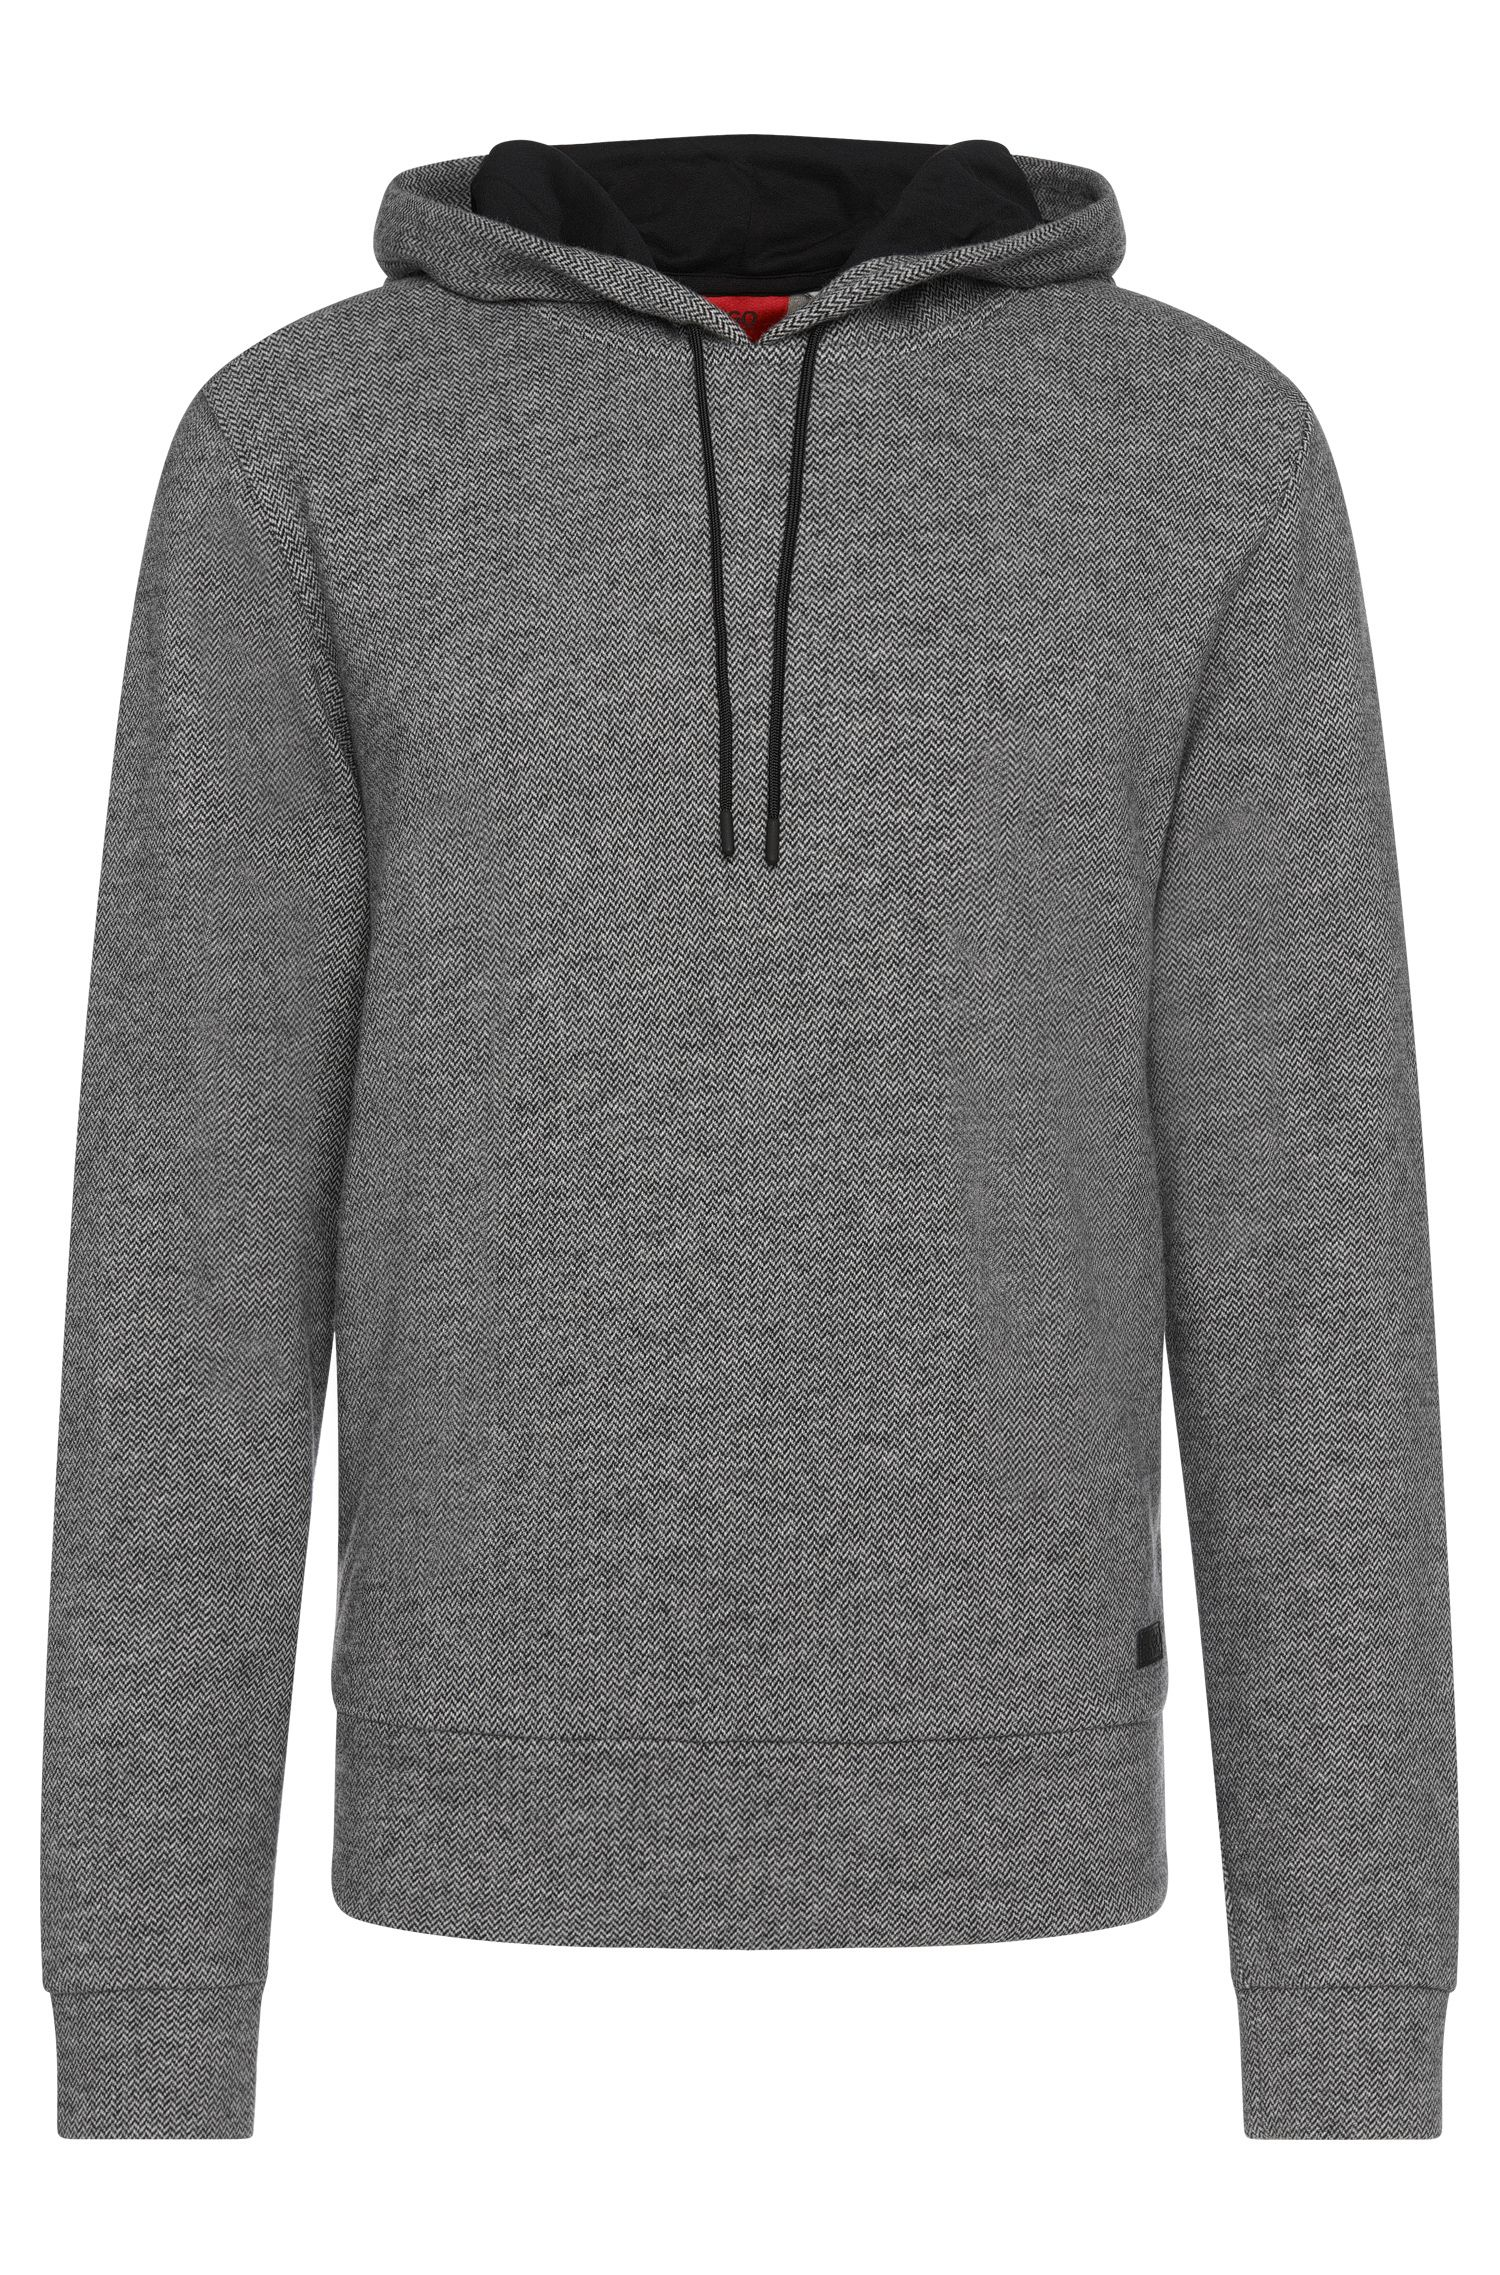 Regular-Fit Sweatshirt aus Baumwoll-Mix mit Zickzack-Muster: 'Dropello'